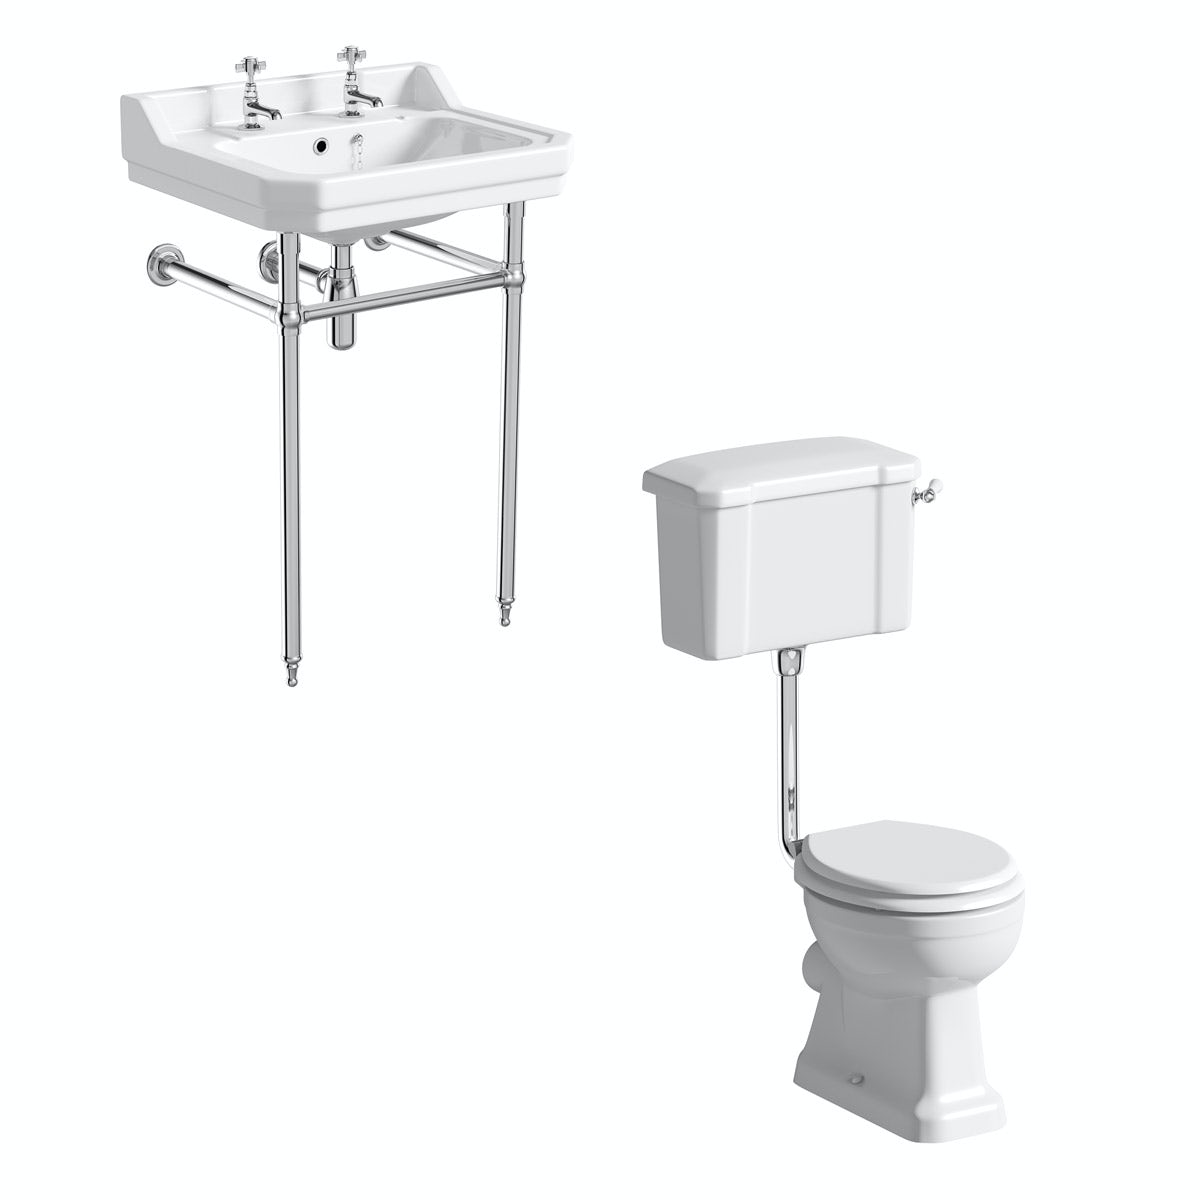 The Bath Co. Camberley cloakroom suite with low level traditional toilet with white seat, washstand and basin 610mm